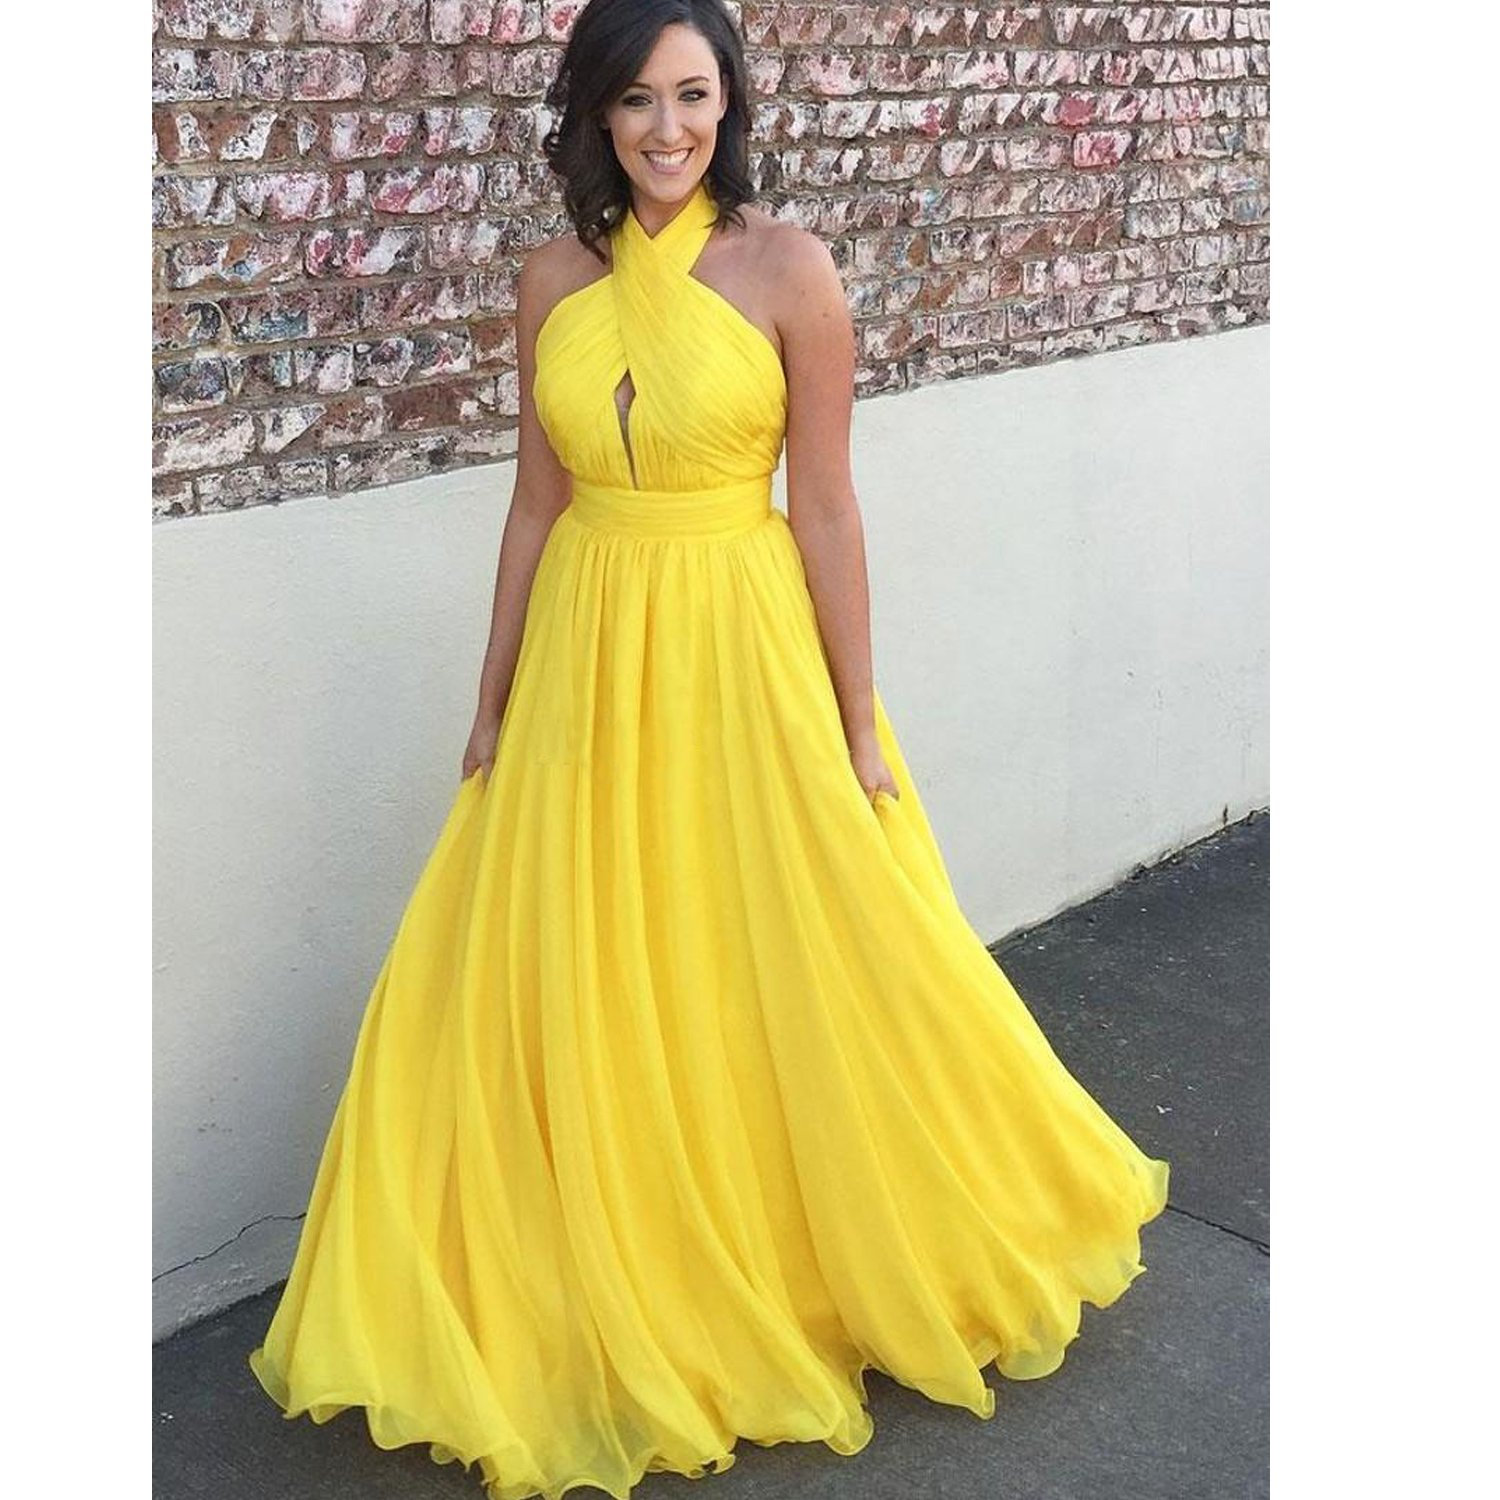 Fair Lady Yellow Plus Size Chiffon Long Evening Dresses Halter Pleated Backless Formal Gowns Prom Dresses 2018 at Amazon Womens Clothing store: